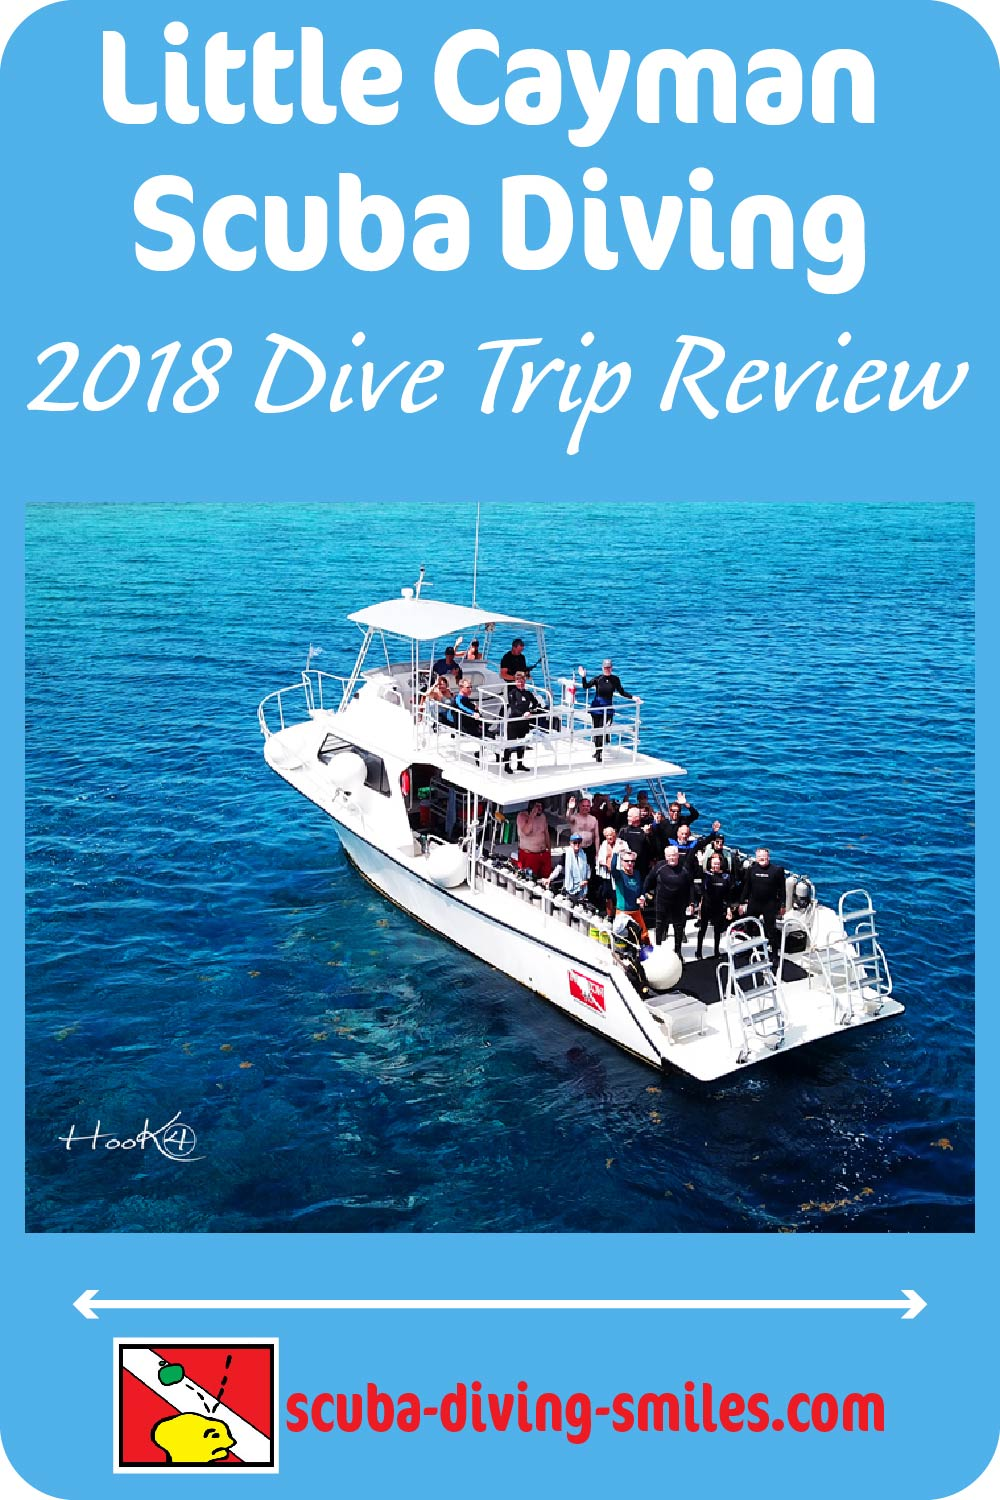 Little Cayman Island scuba diving trip review.